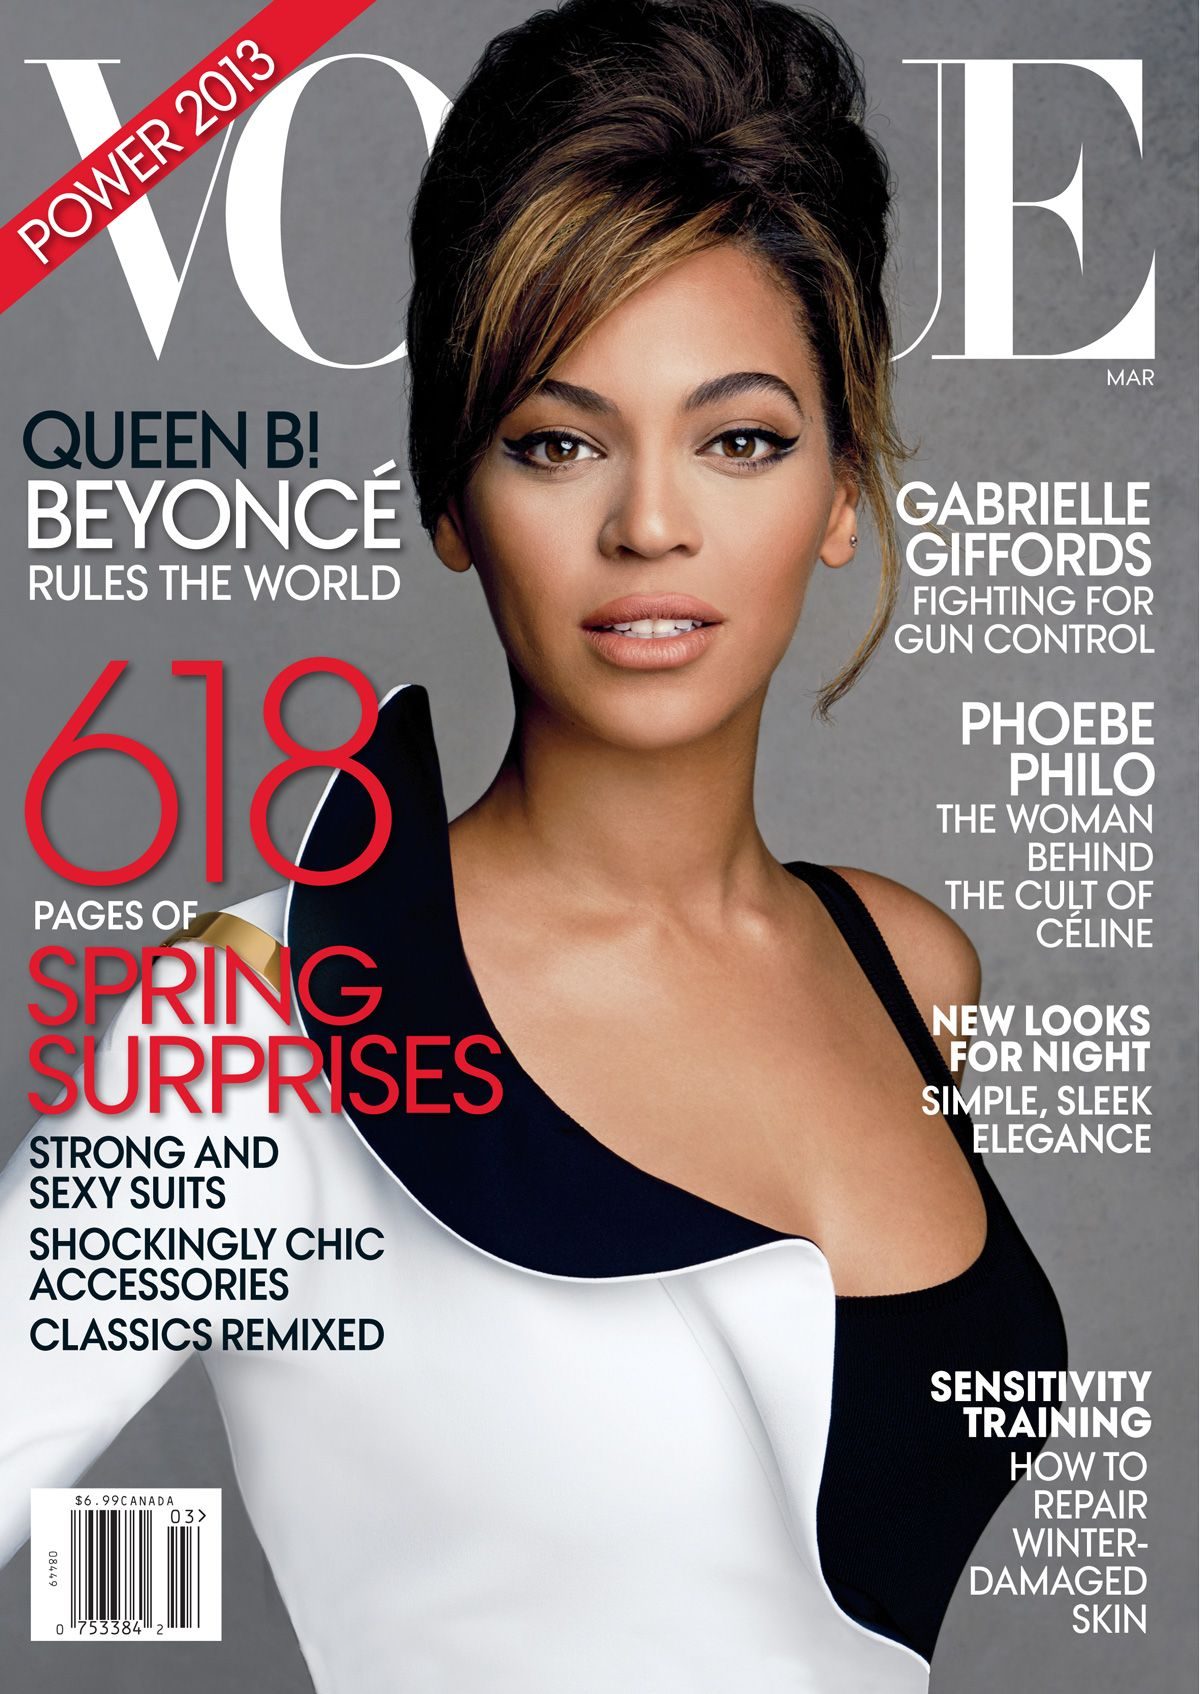 beyonce-vogue-cover-march-2013_144337662914